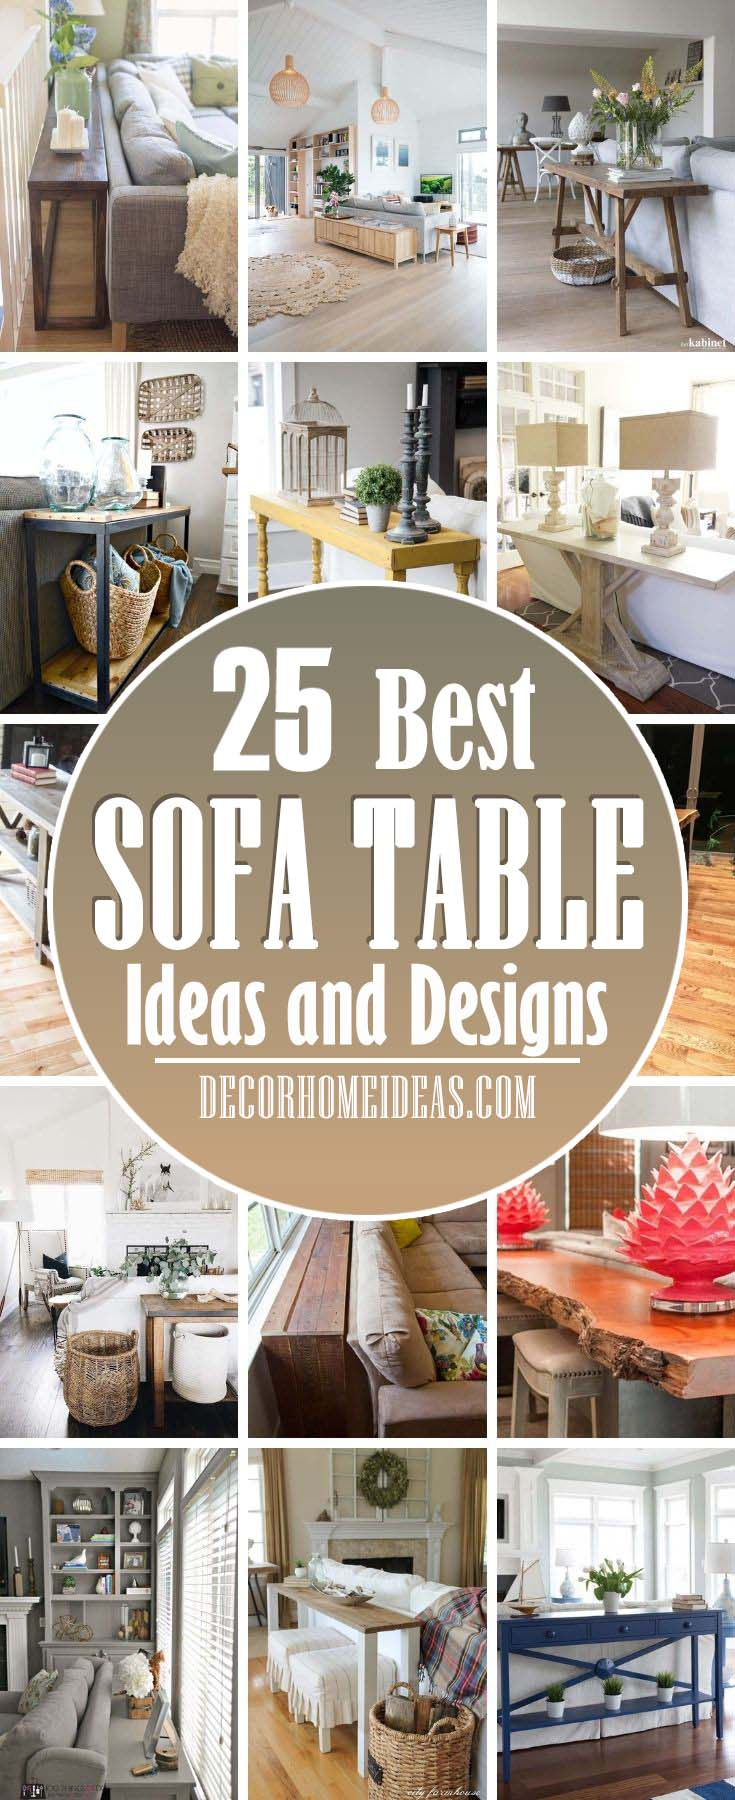 Best Sofa Table Ideas. These amazing behind the sofa tables are very popular right now, because they add functionality and aesthetics. #decorhomeideas